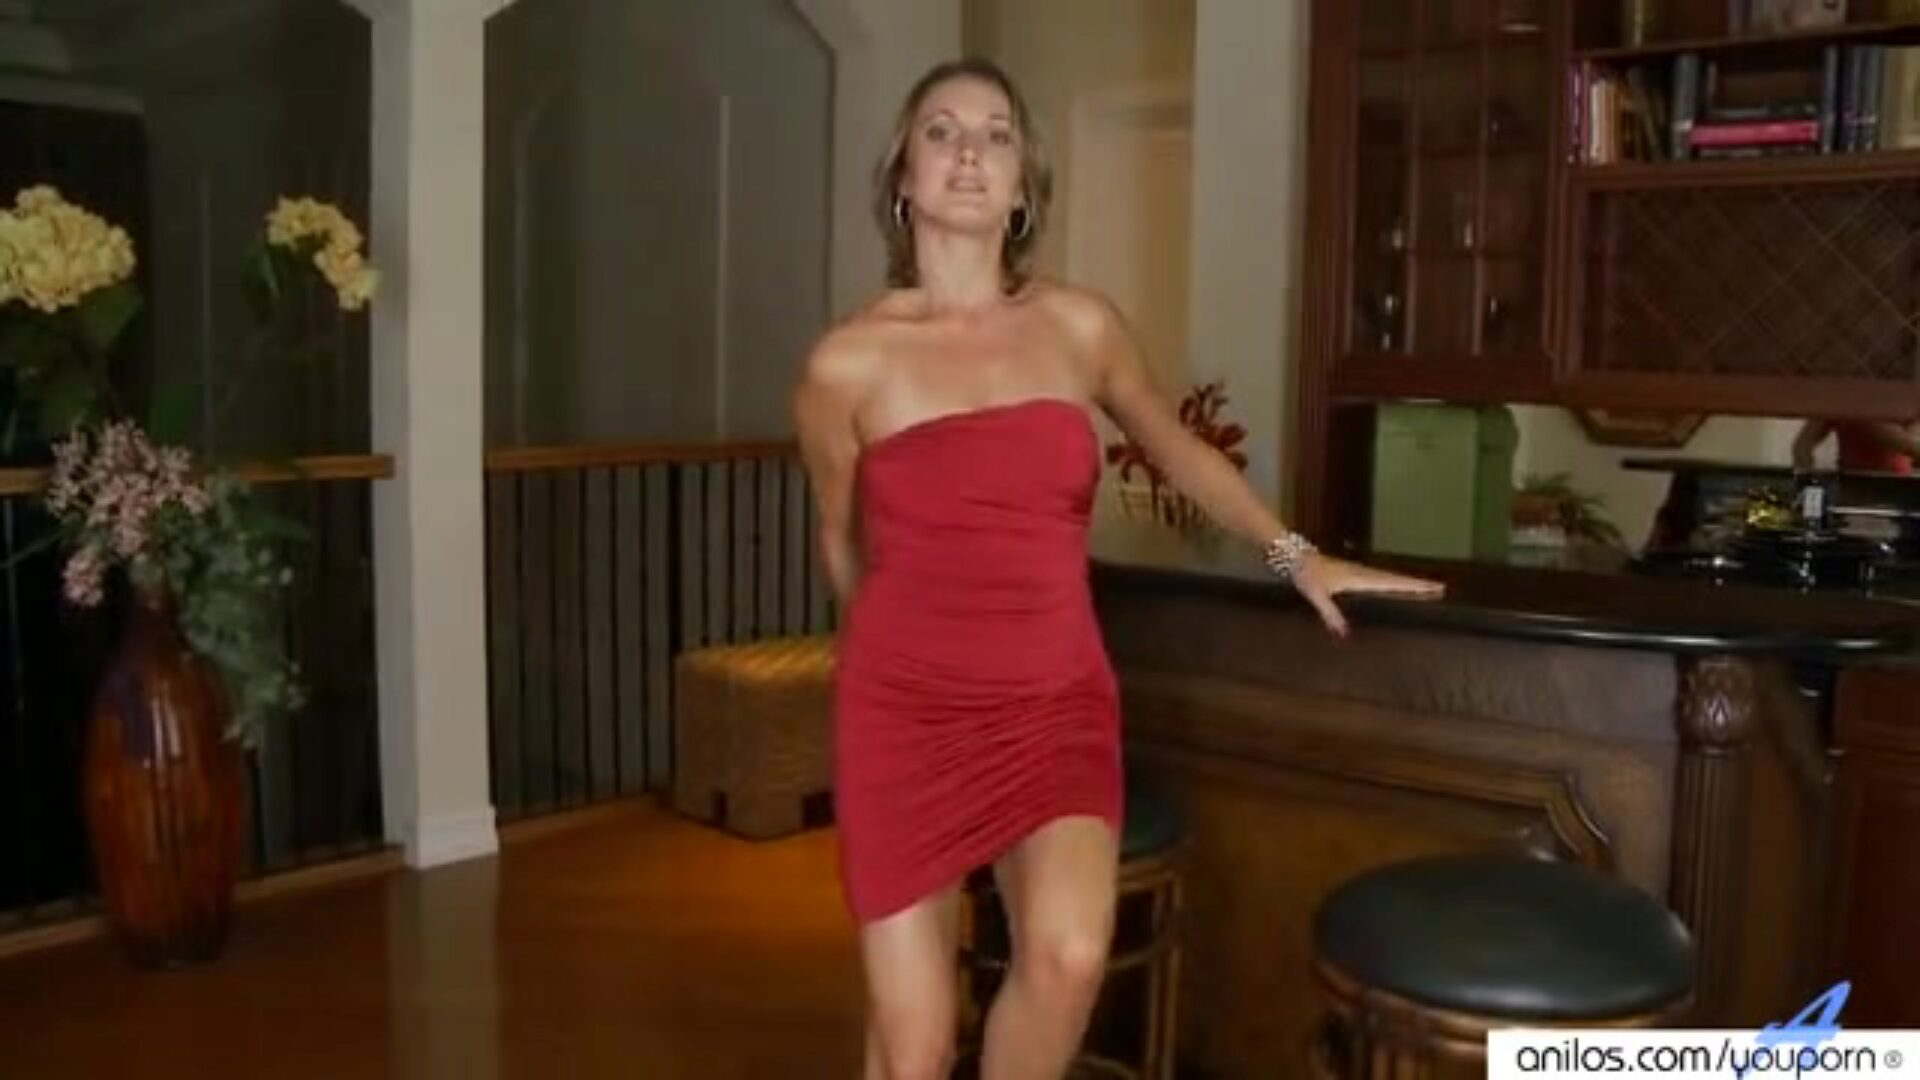 High heeled milf toys herself Milf in a hot red dress and belt strips her lean bod undressed and fucktoys her love tunnel dressed in no thing but glossy silver heels